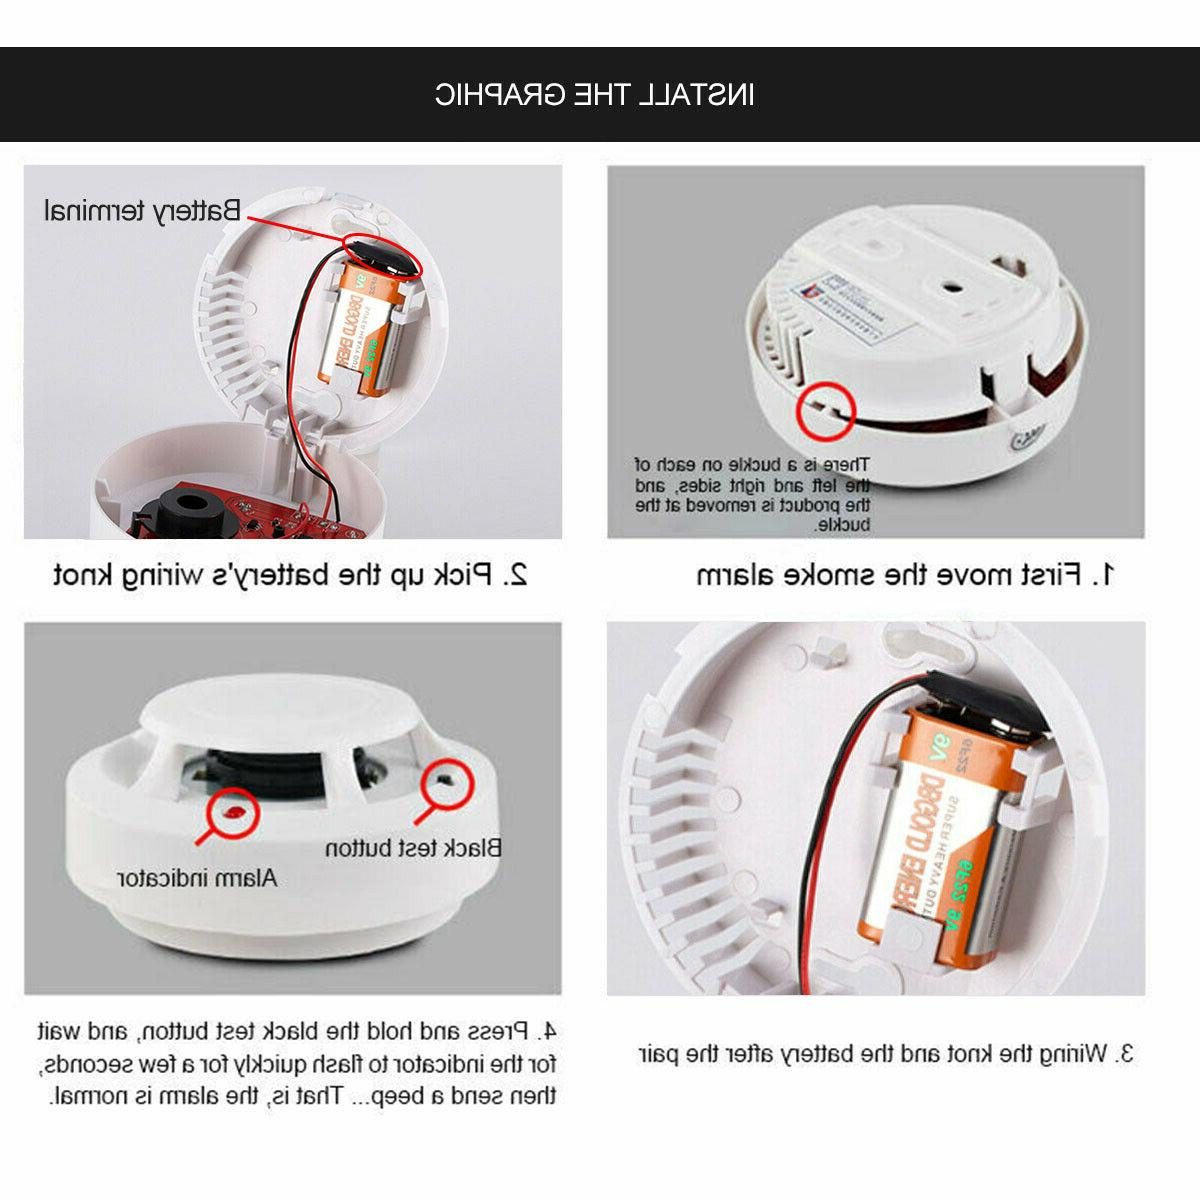 US Monoxide Detector Warning Gas Security Monitor